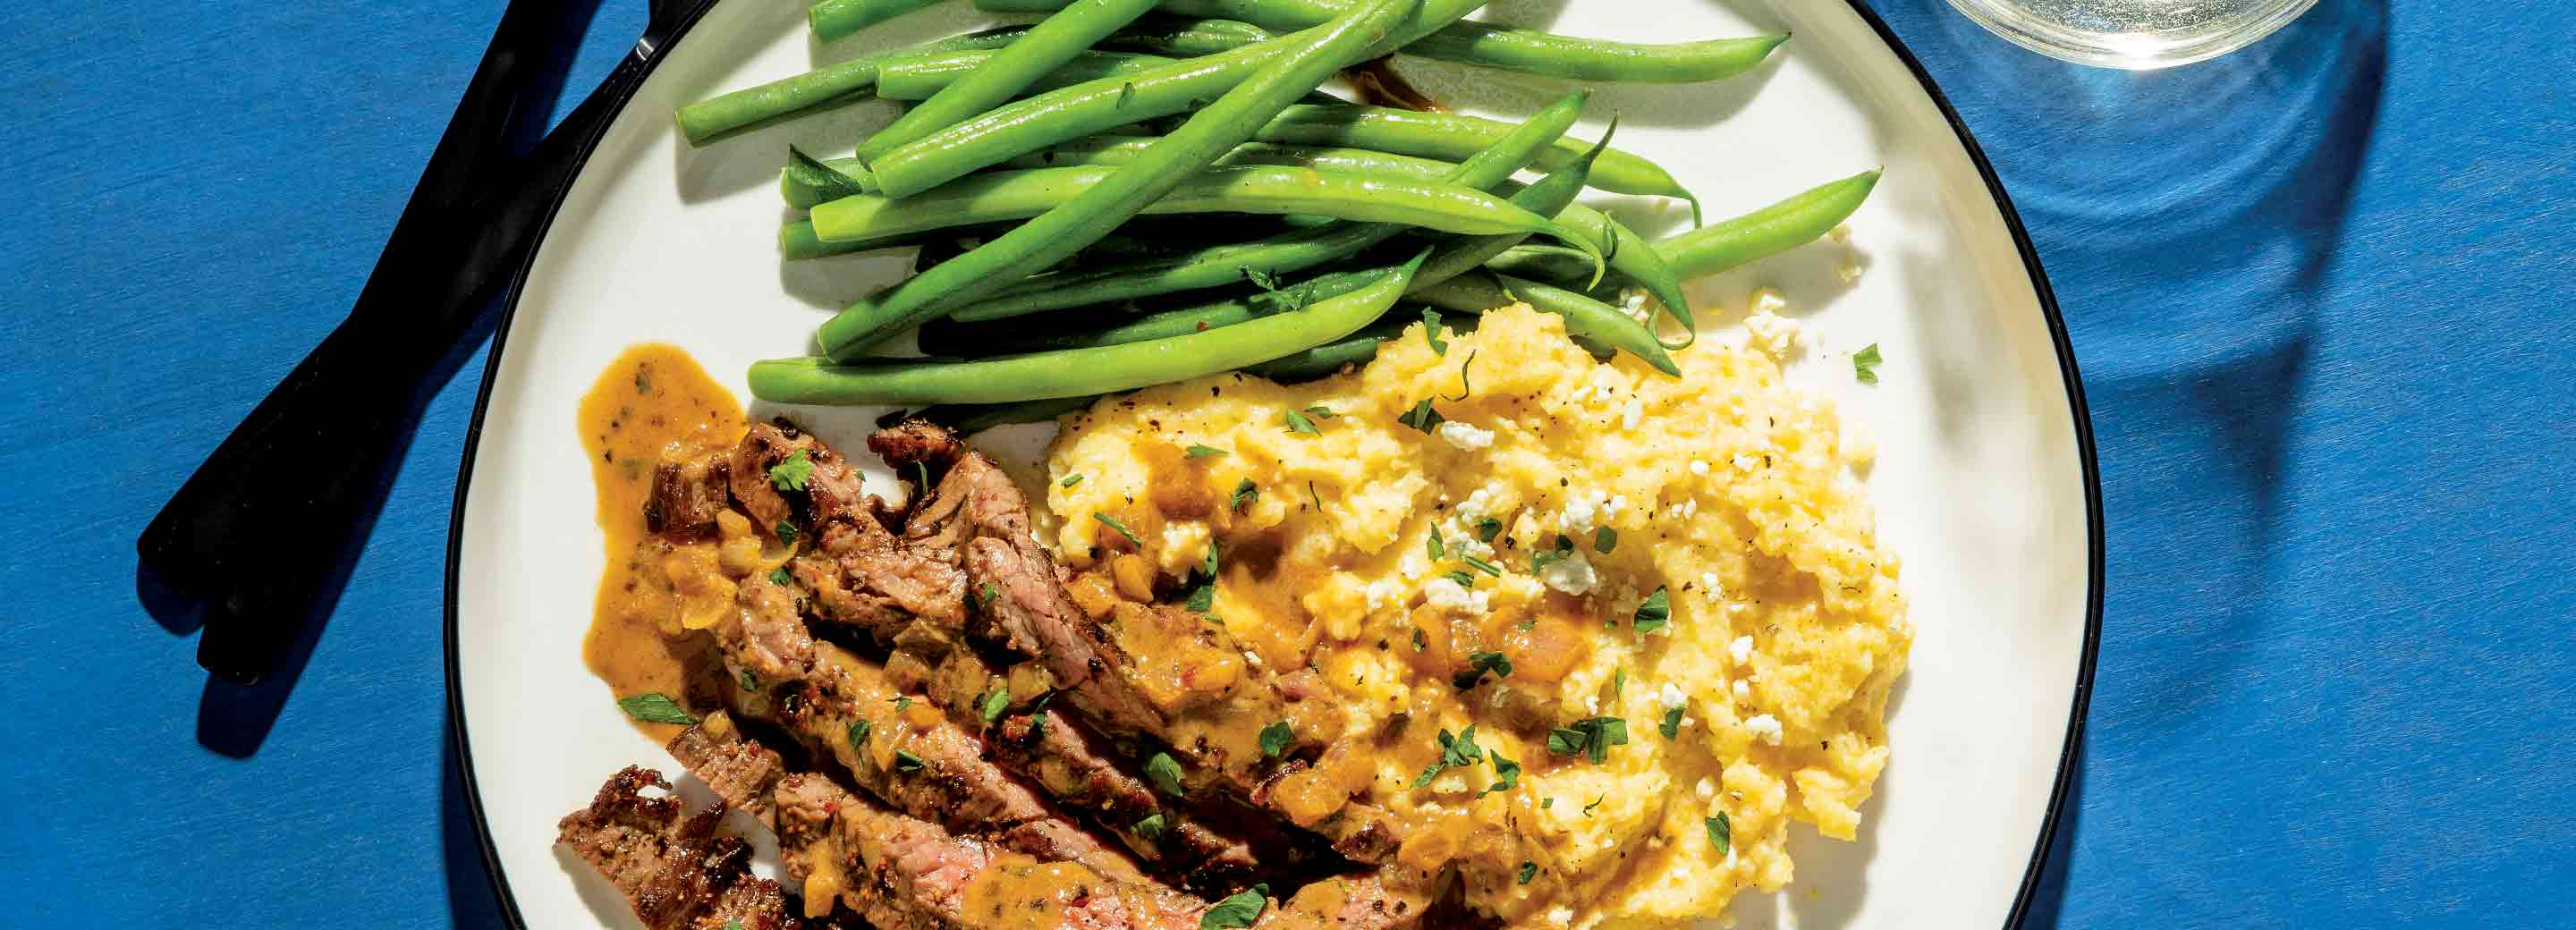 Steakhouse Dinner with Blue Cheese Polenta